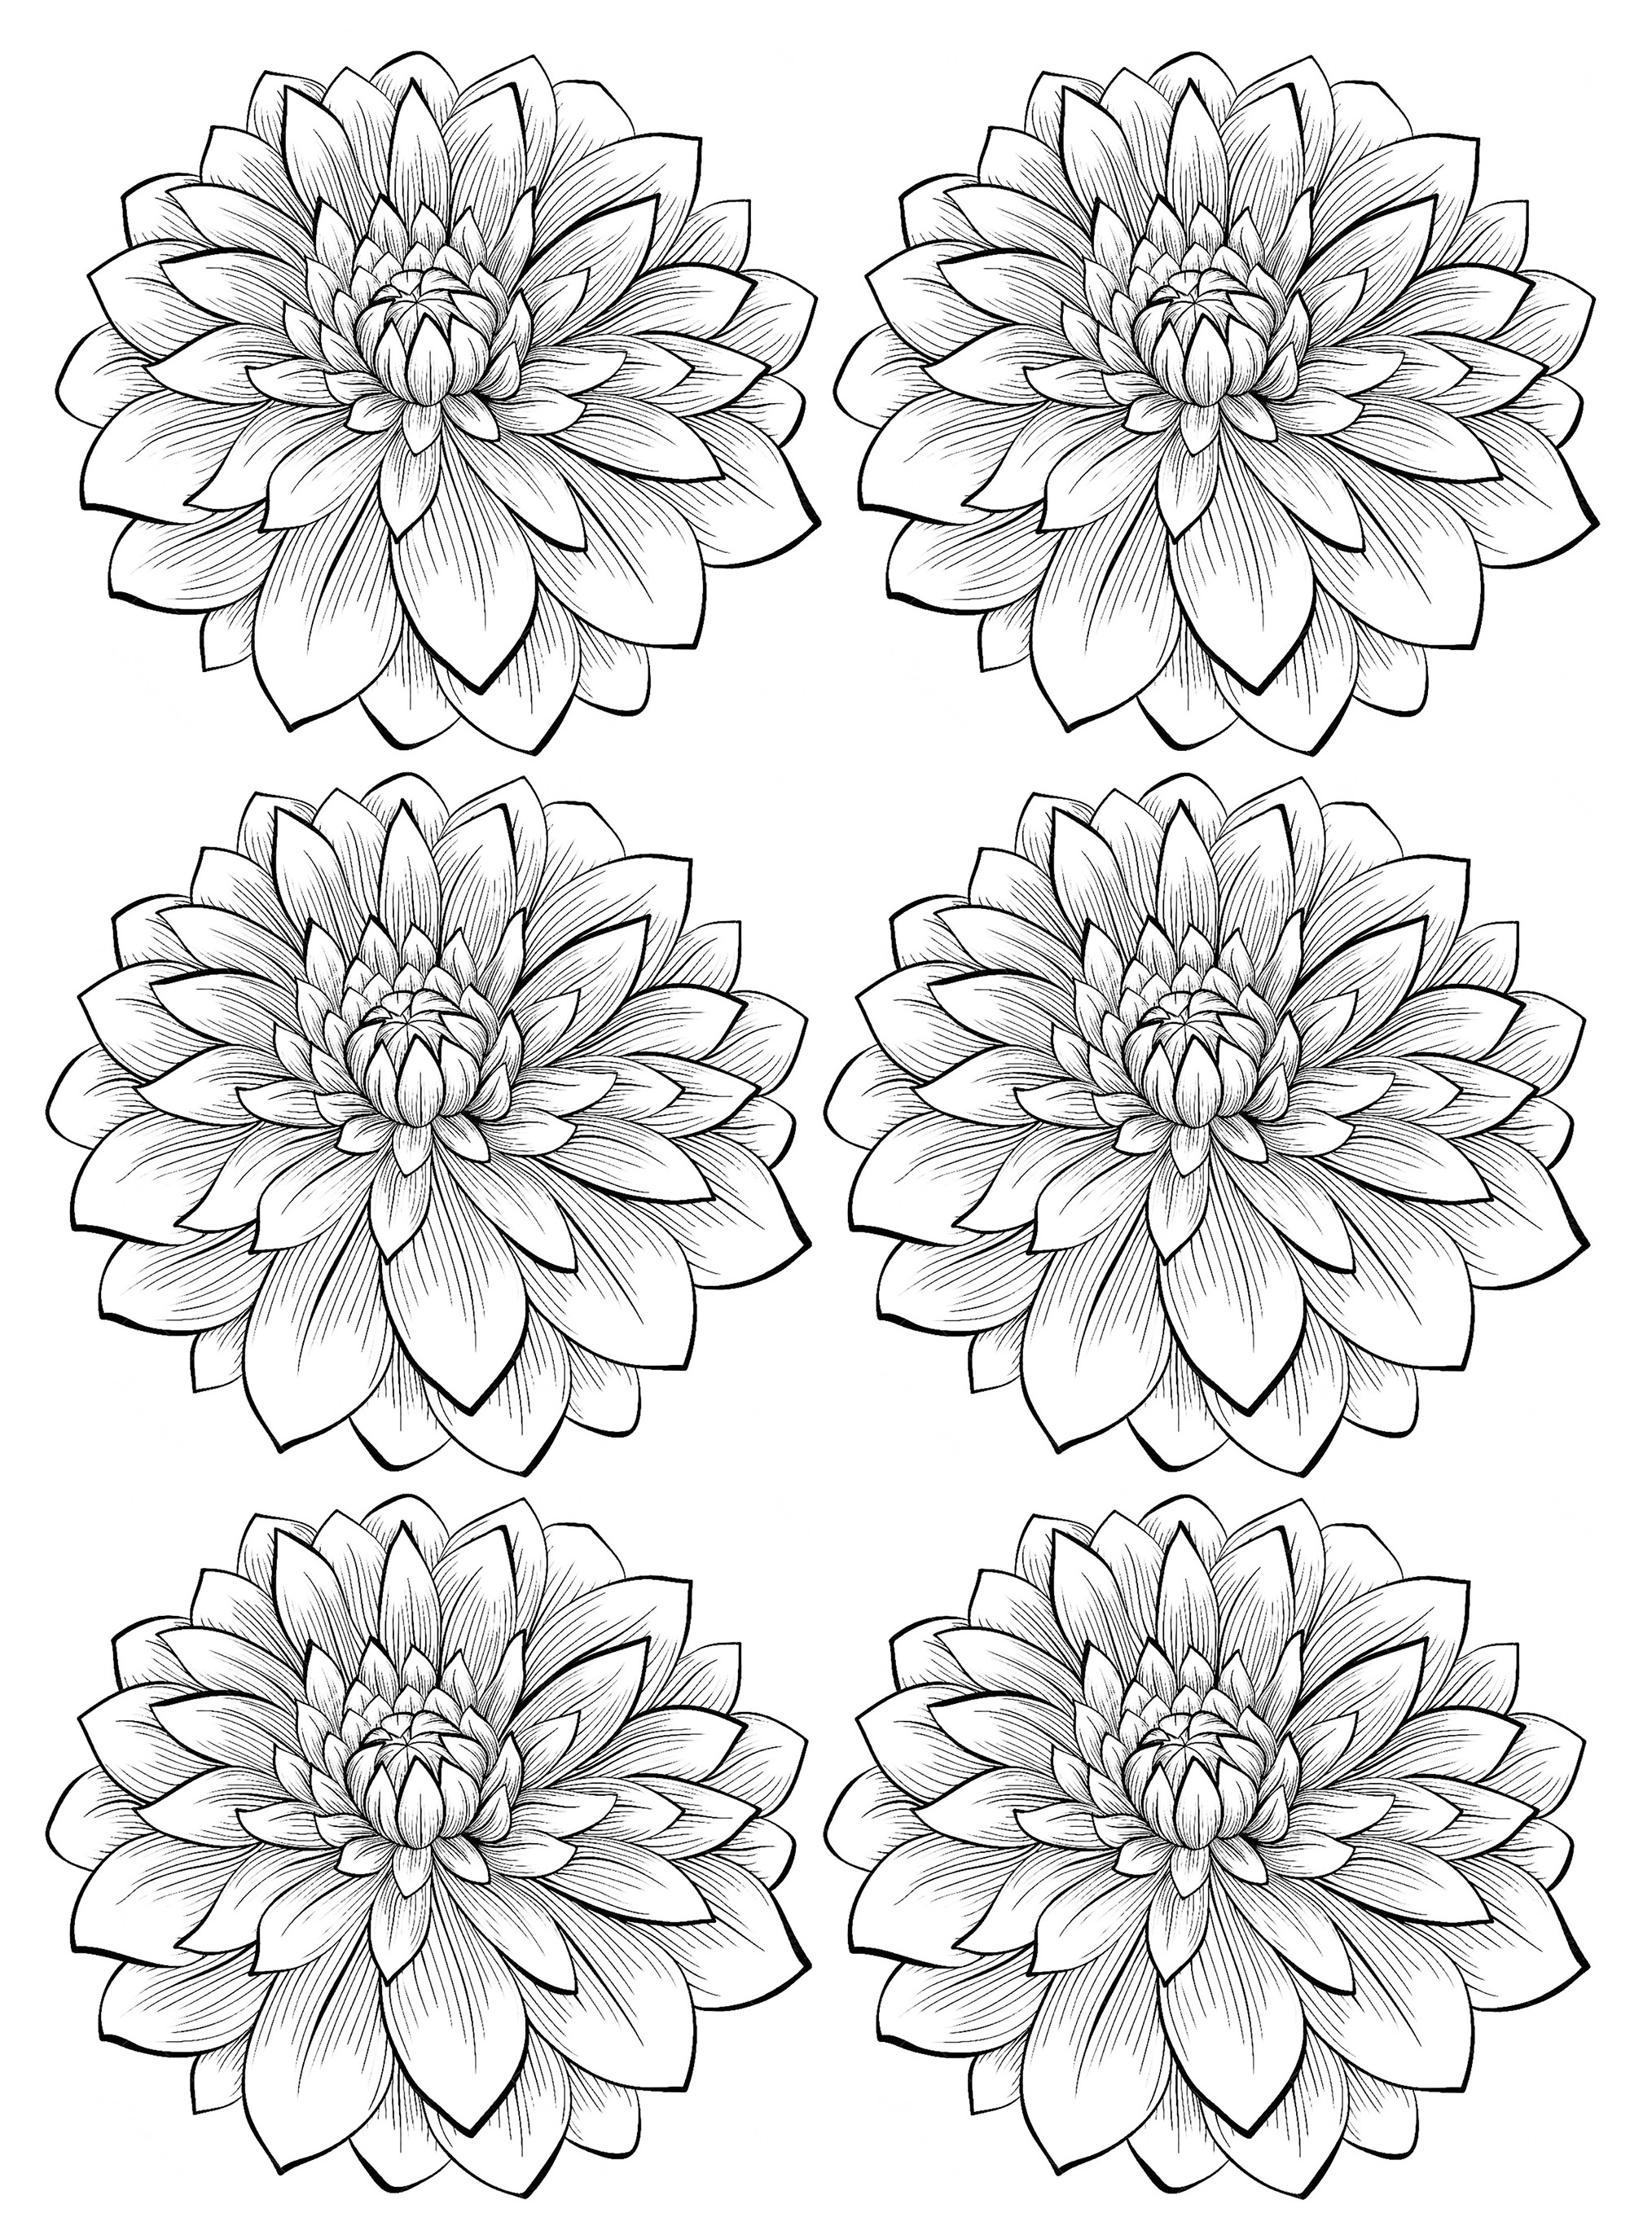 Six dahlias